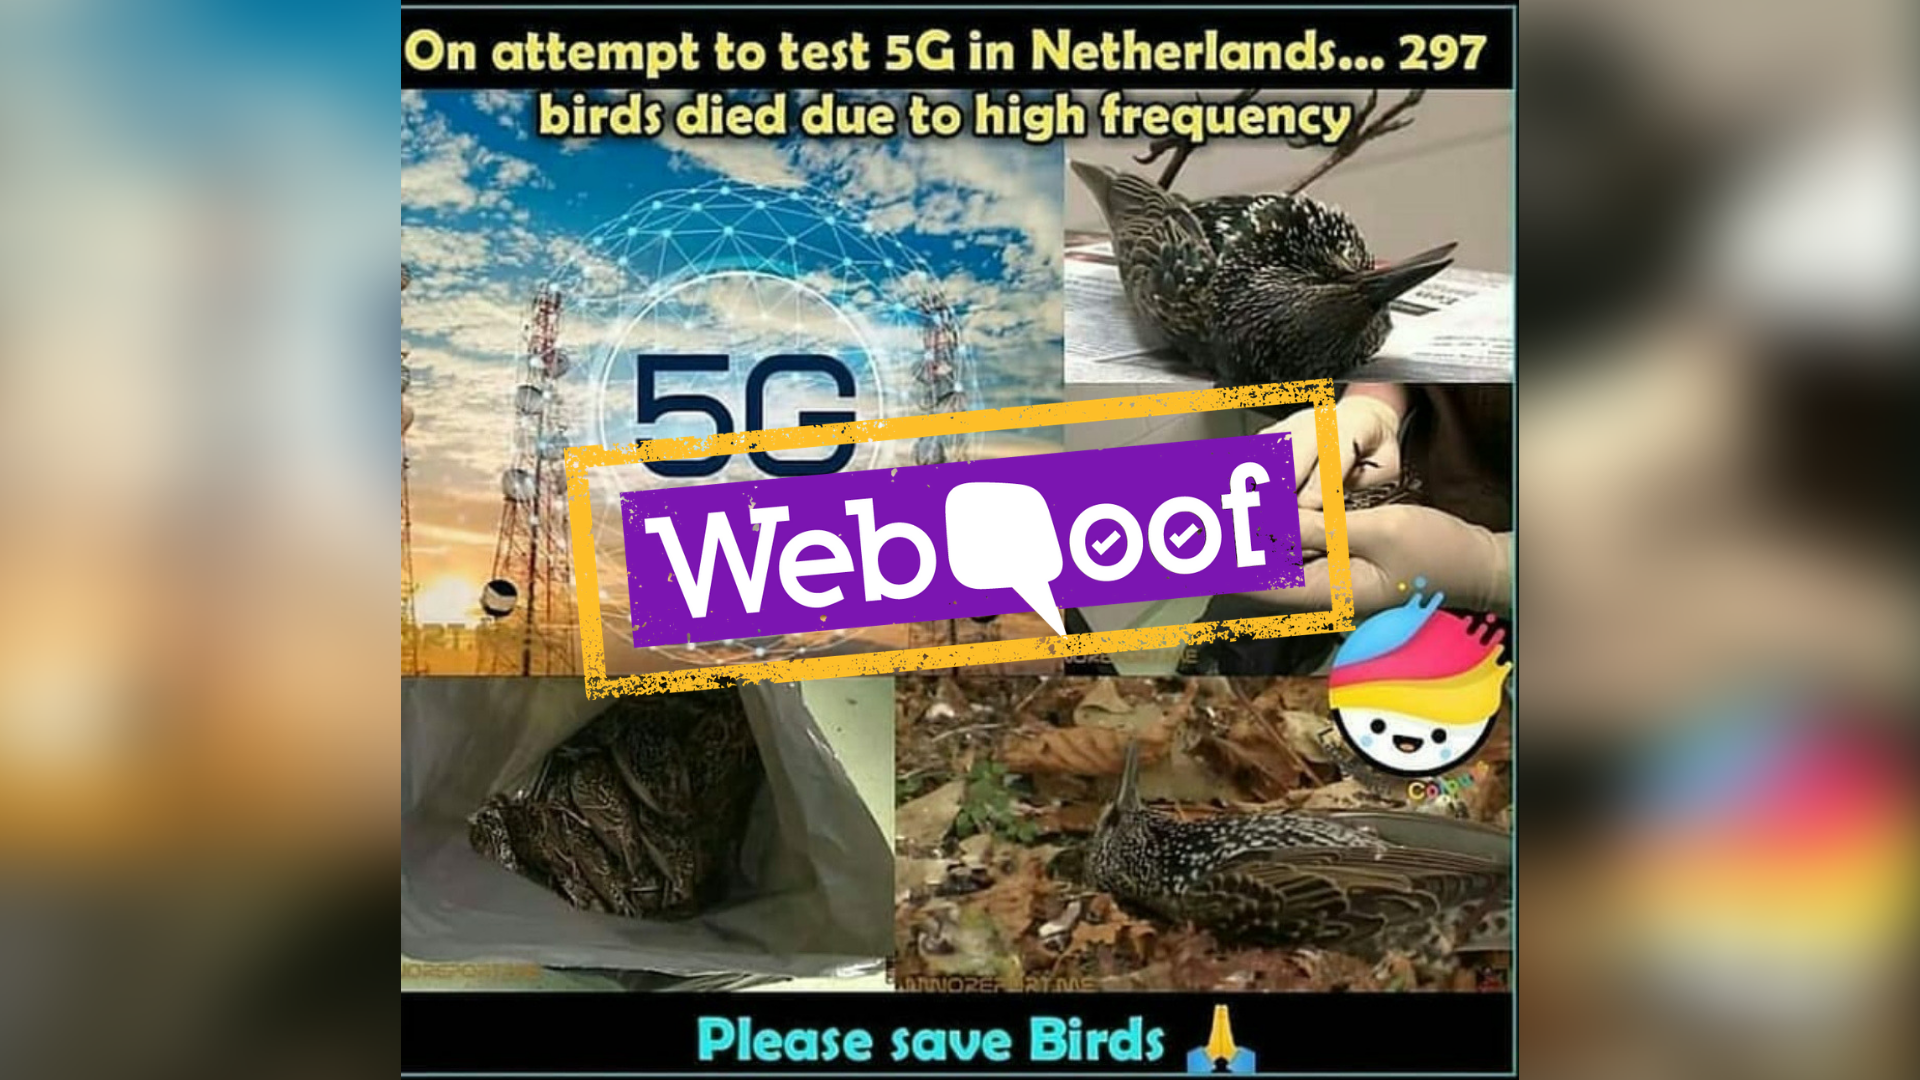 Did 297 Birds Die Because of a 5G Experiment in Netherlands?